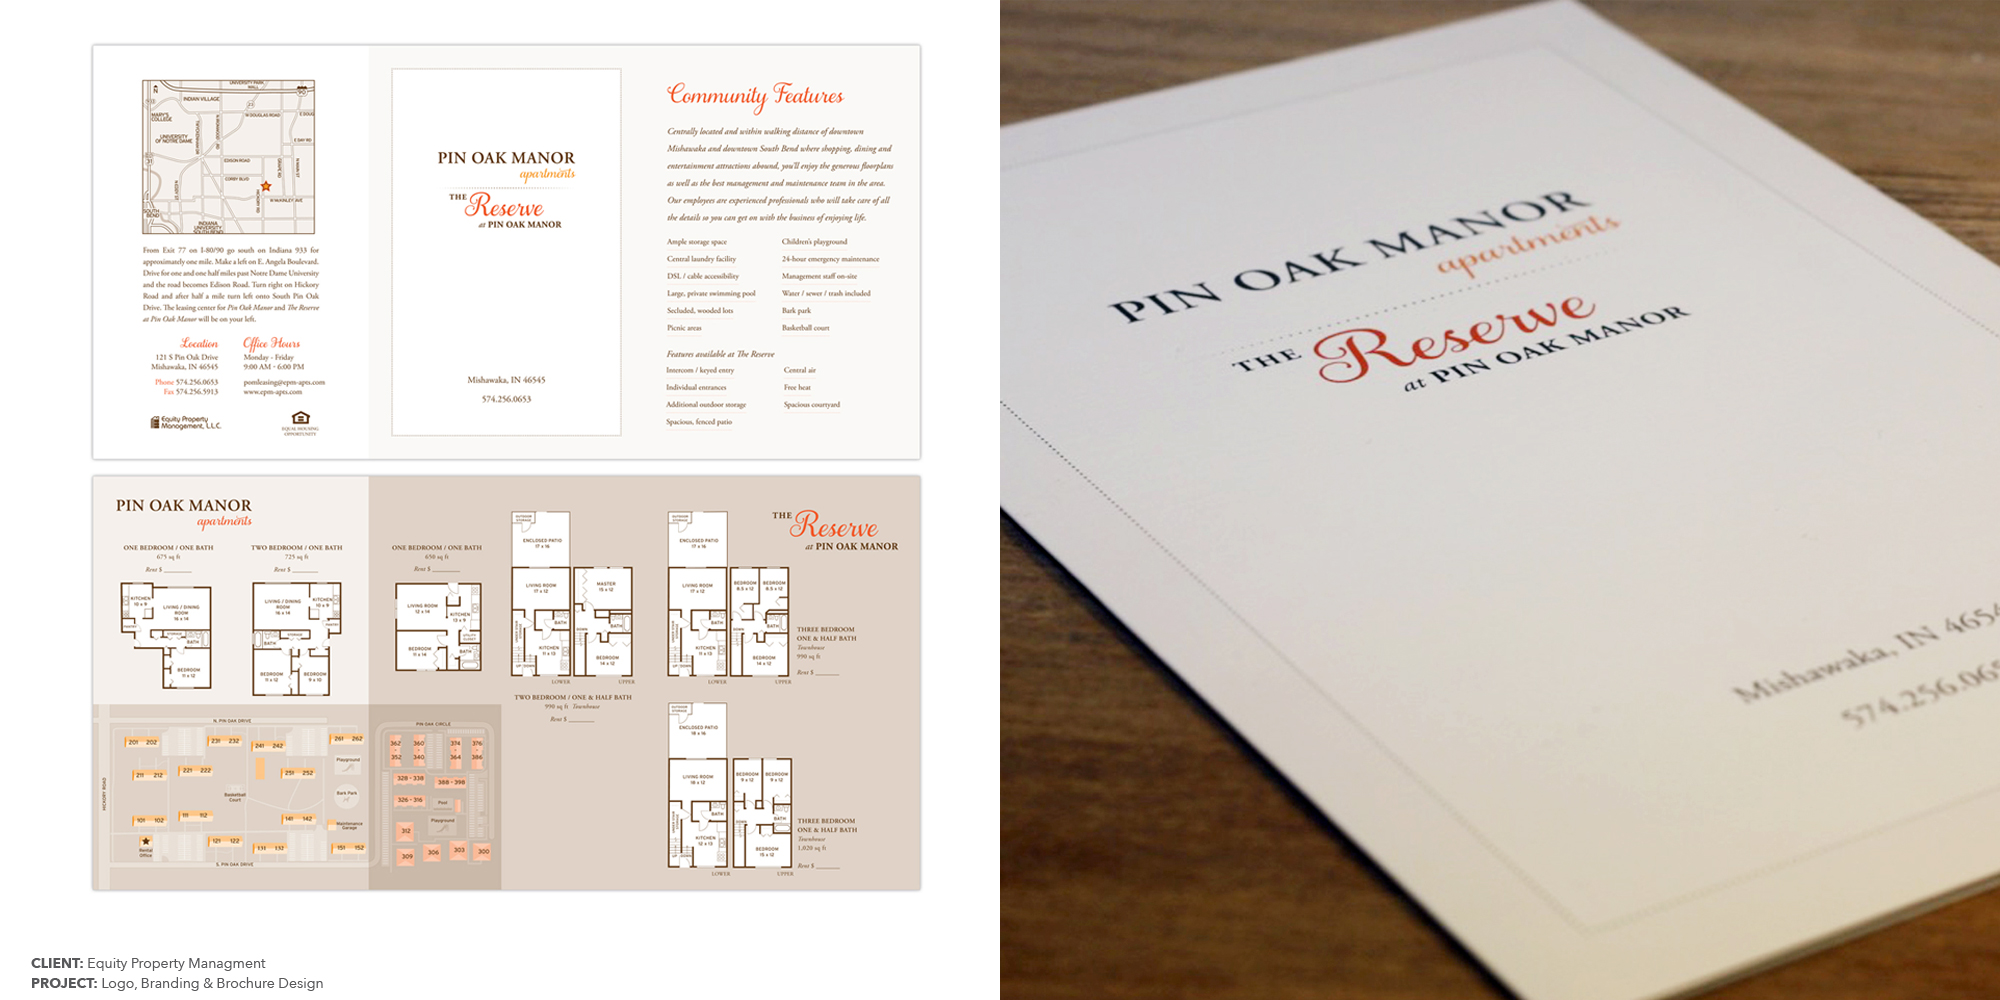 PINOAK MANOR & THE RESERVE AT PINOAK MANOR PROPERTY BRANDING & MARKETING MATERIALS  CLIENT:  EQUITY PROPERTY MANAGEMENT